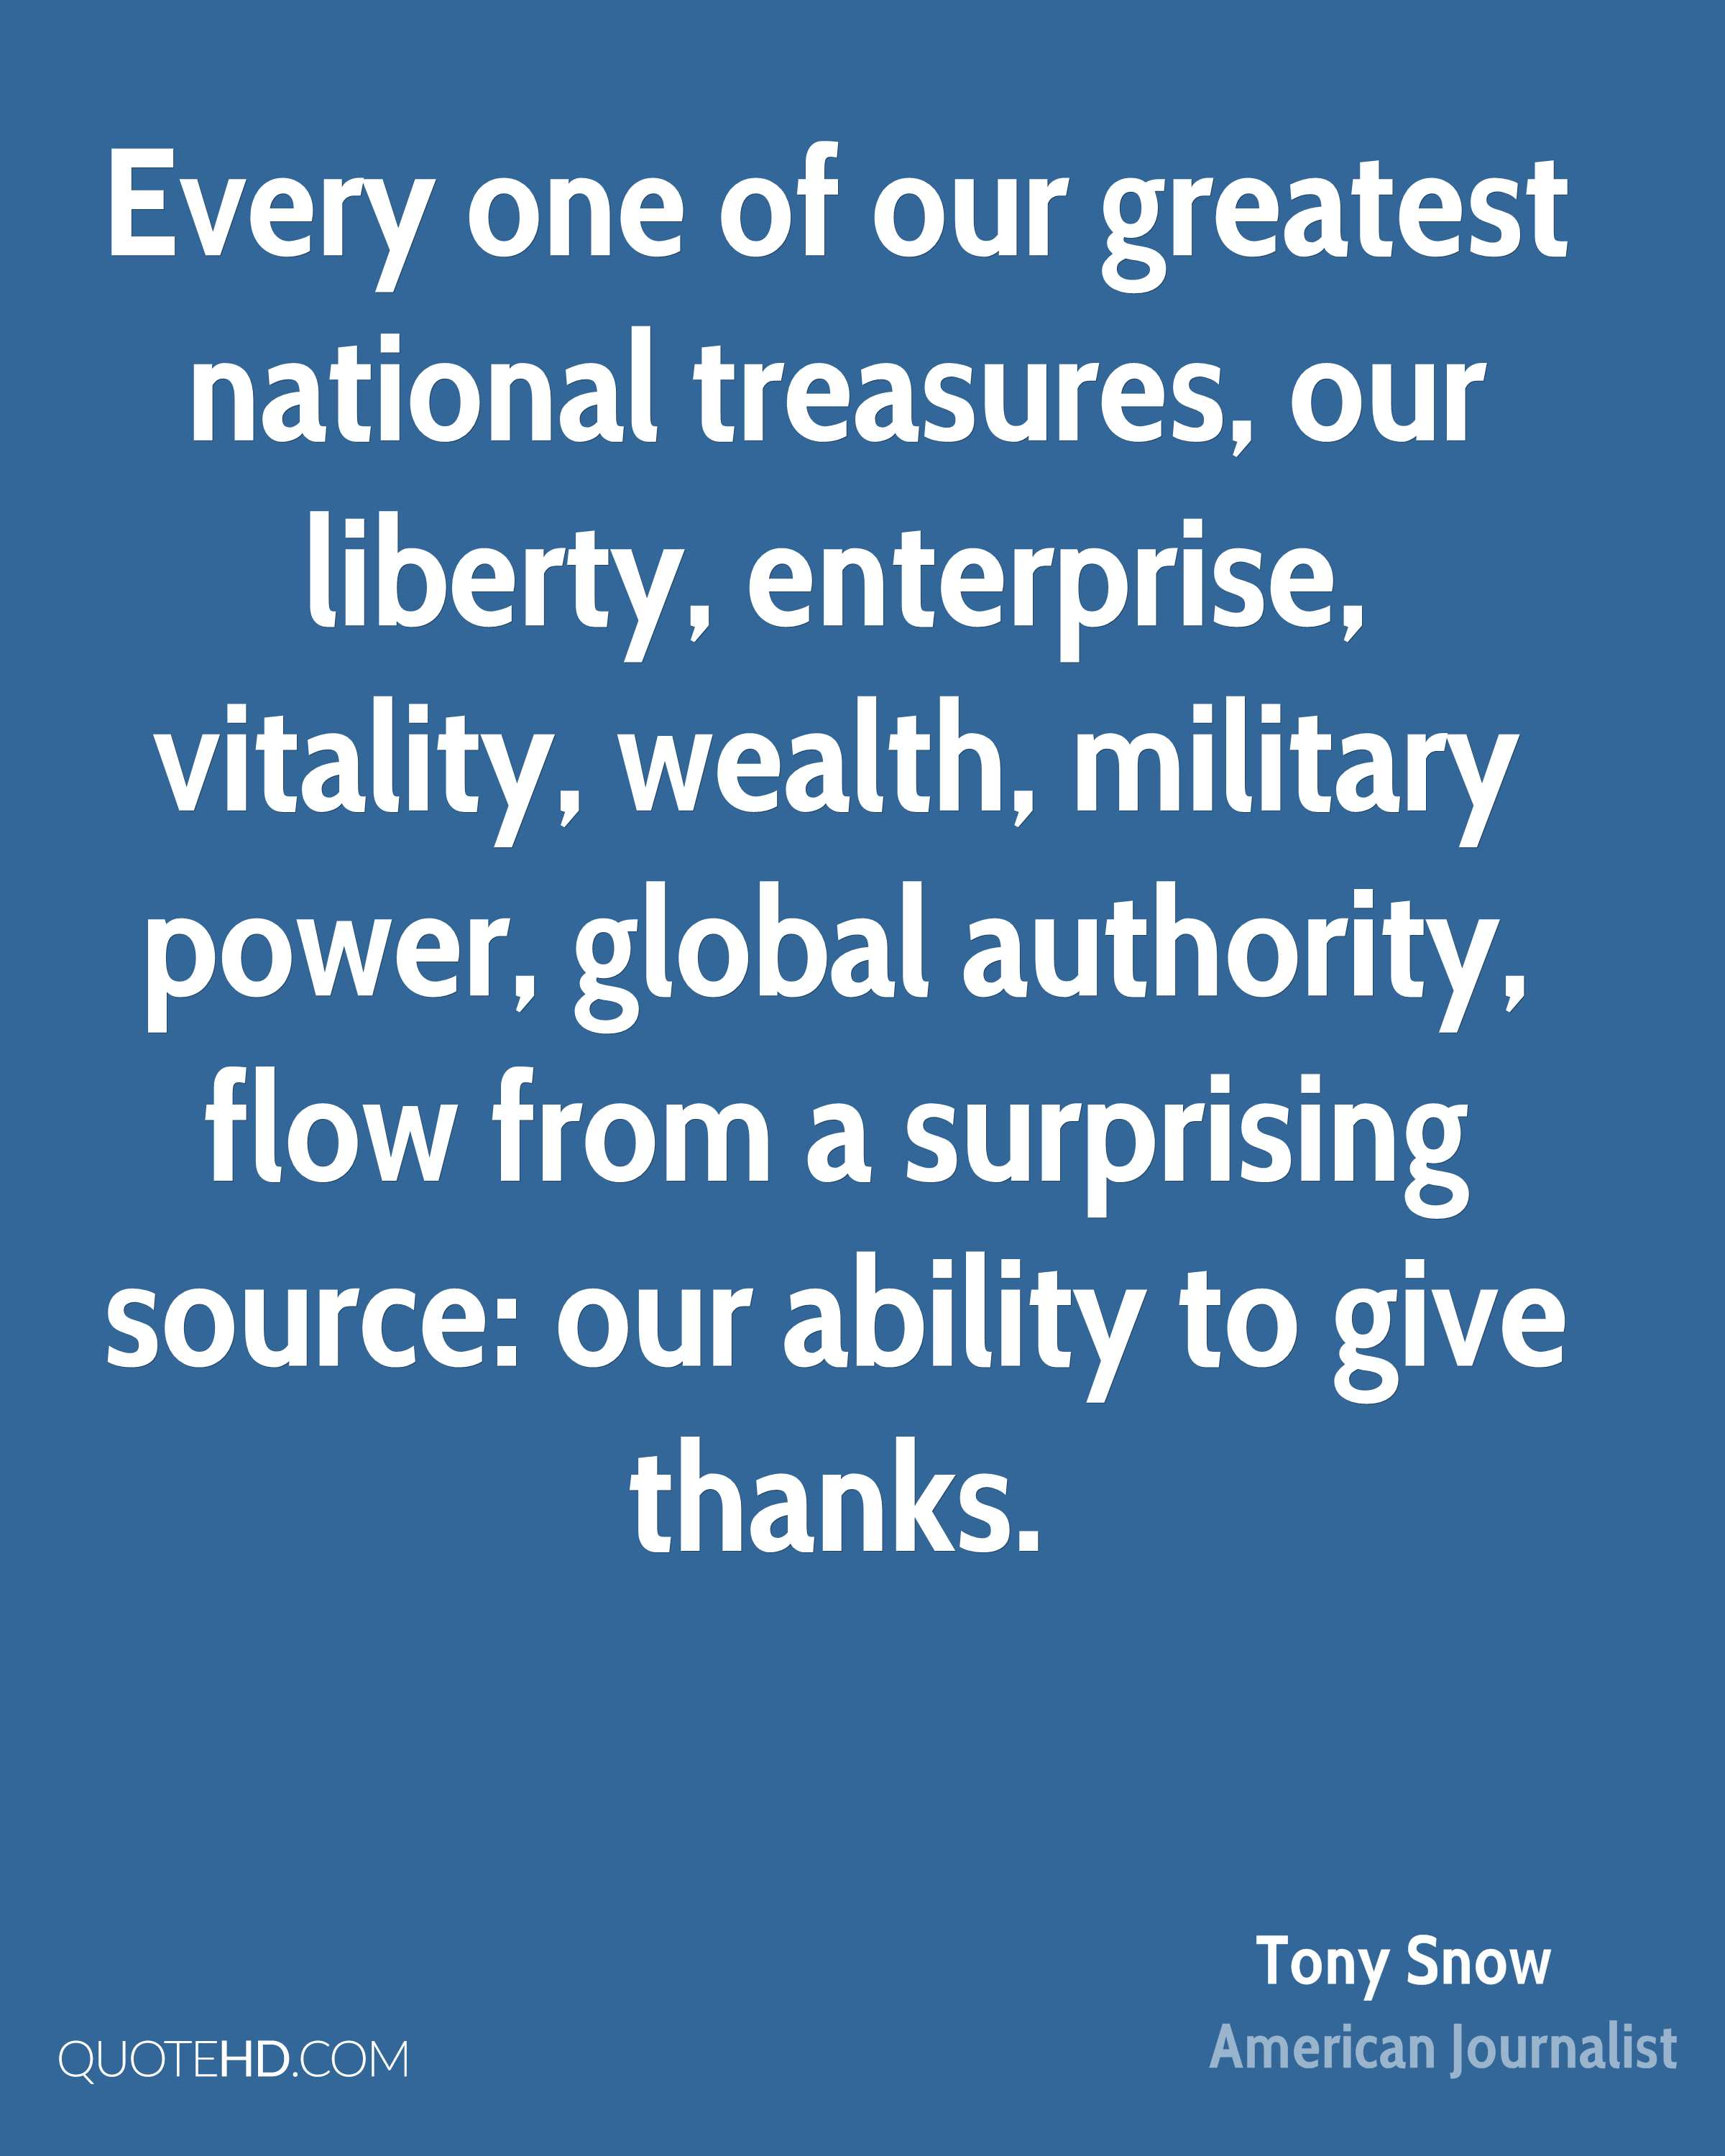 Every one of our greatest national treasures, our liberty, enterprise, vitality, wealth, military power, global authority, flow from a surprising source: our ability to give thanks.